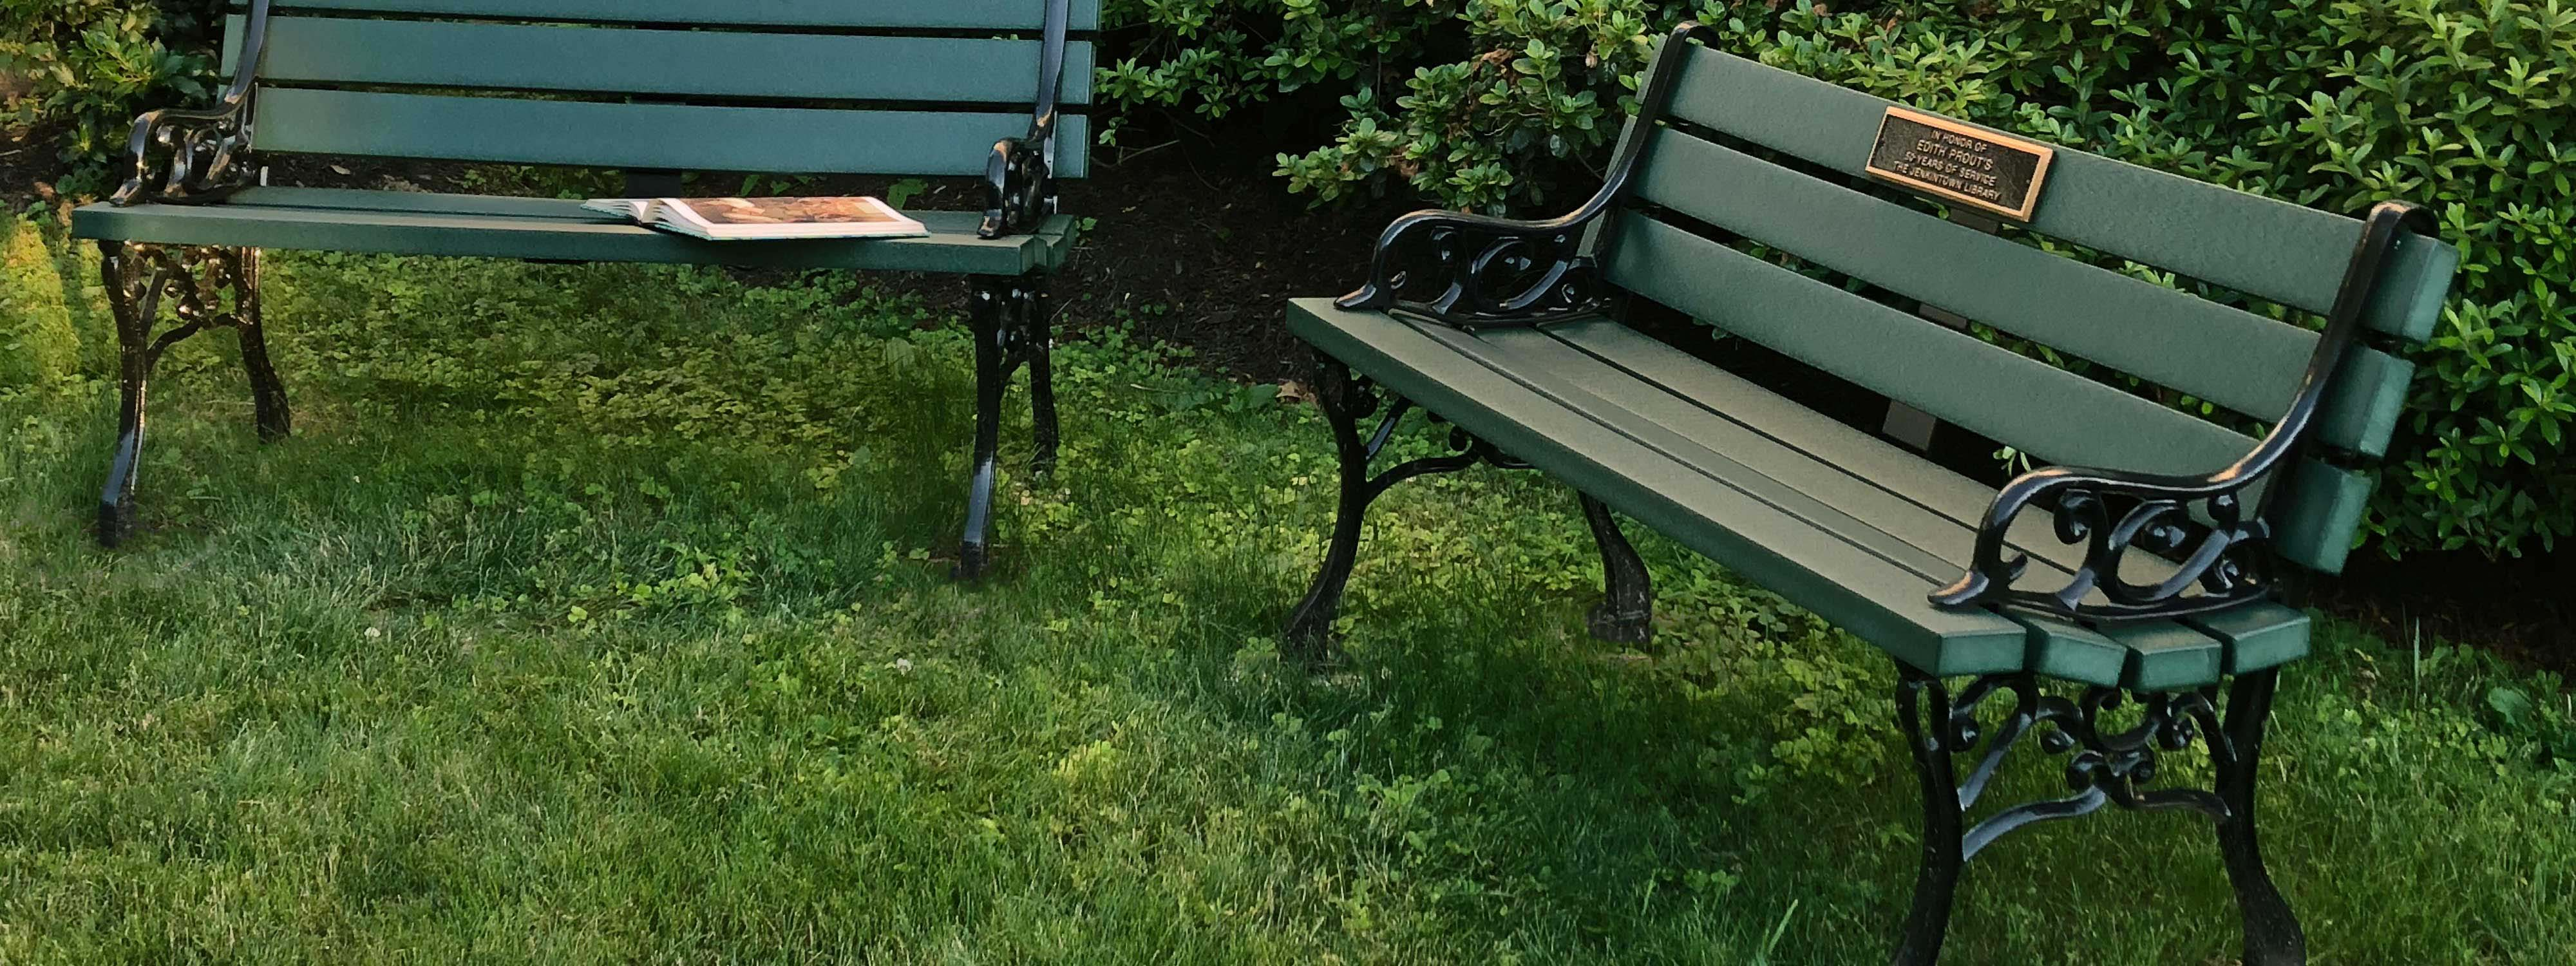 two benches in grass